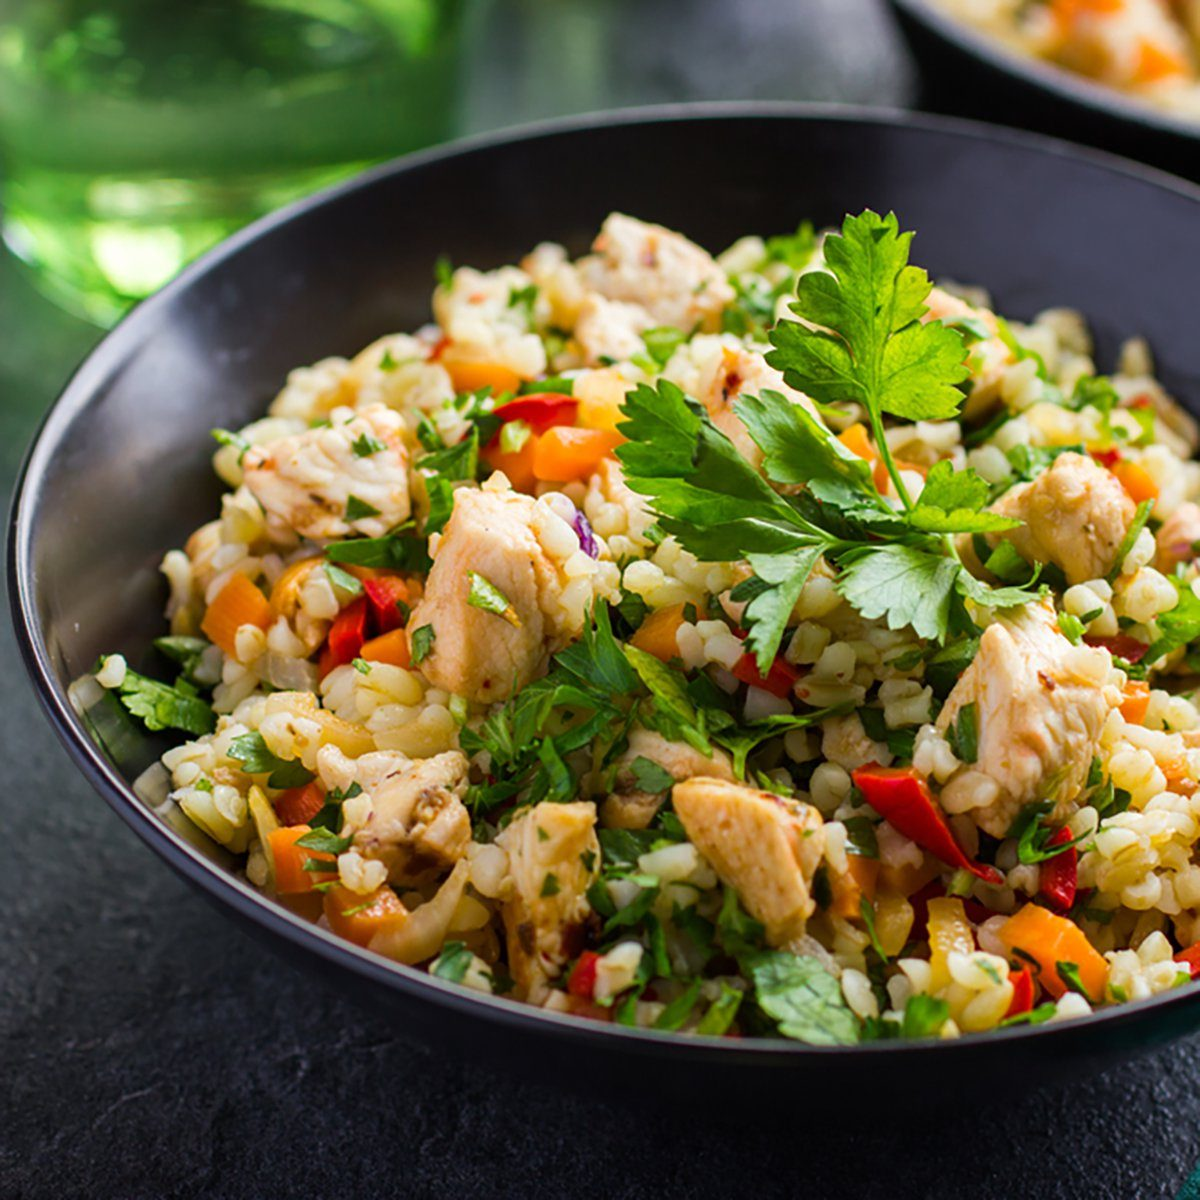 warm barley salad with chicken and vegetables, selective focus